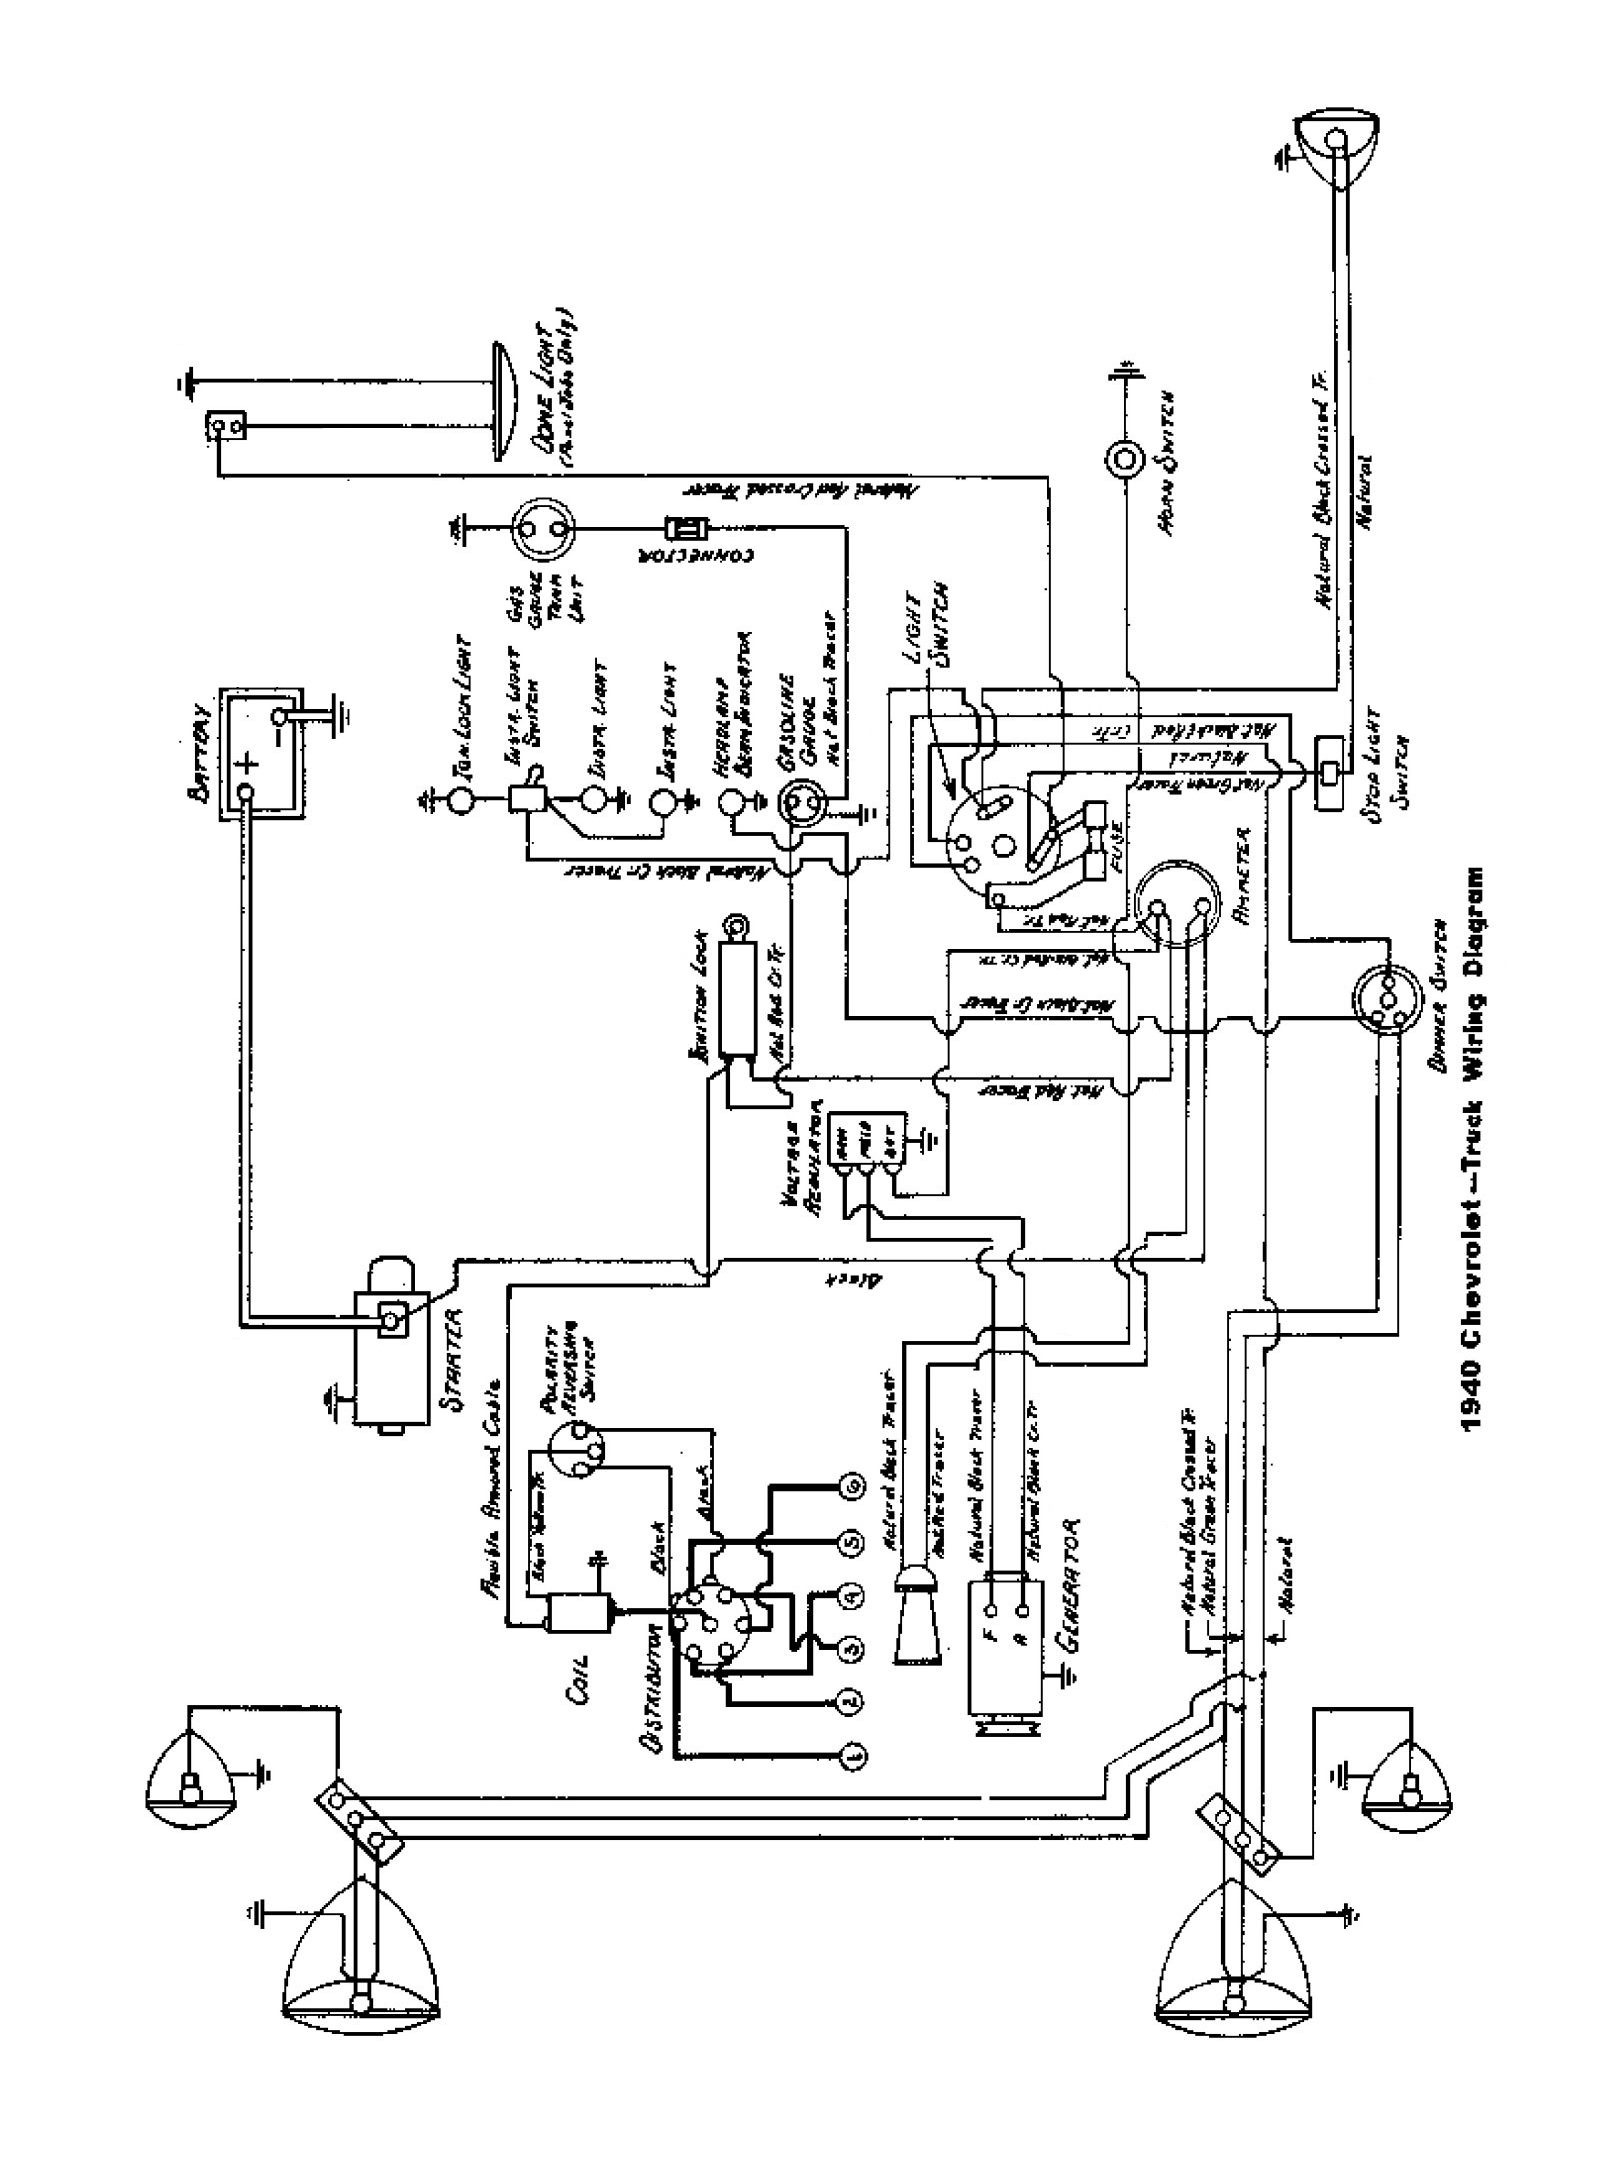 gm car wiring diagram data wiring diagram updatechevy wiring diagrams interior wiring diagram car wiring · 1940 truck wiring